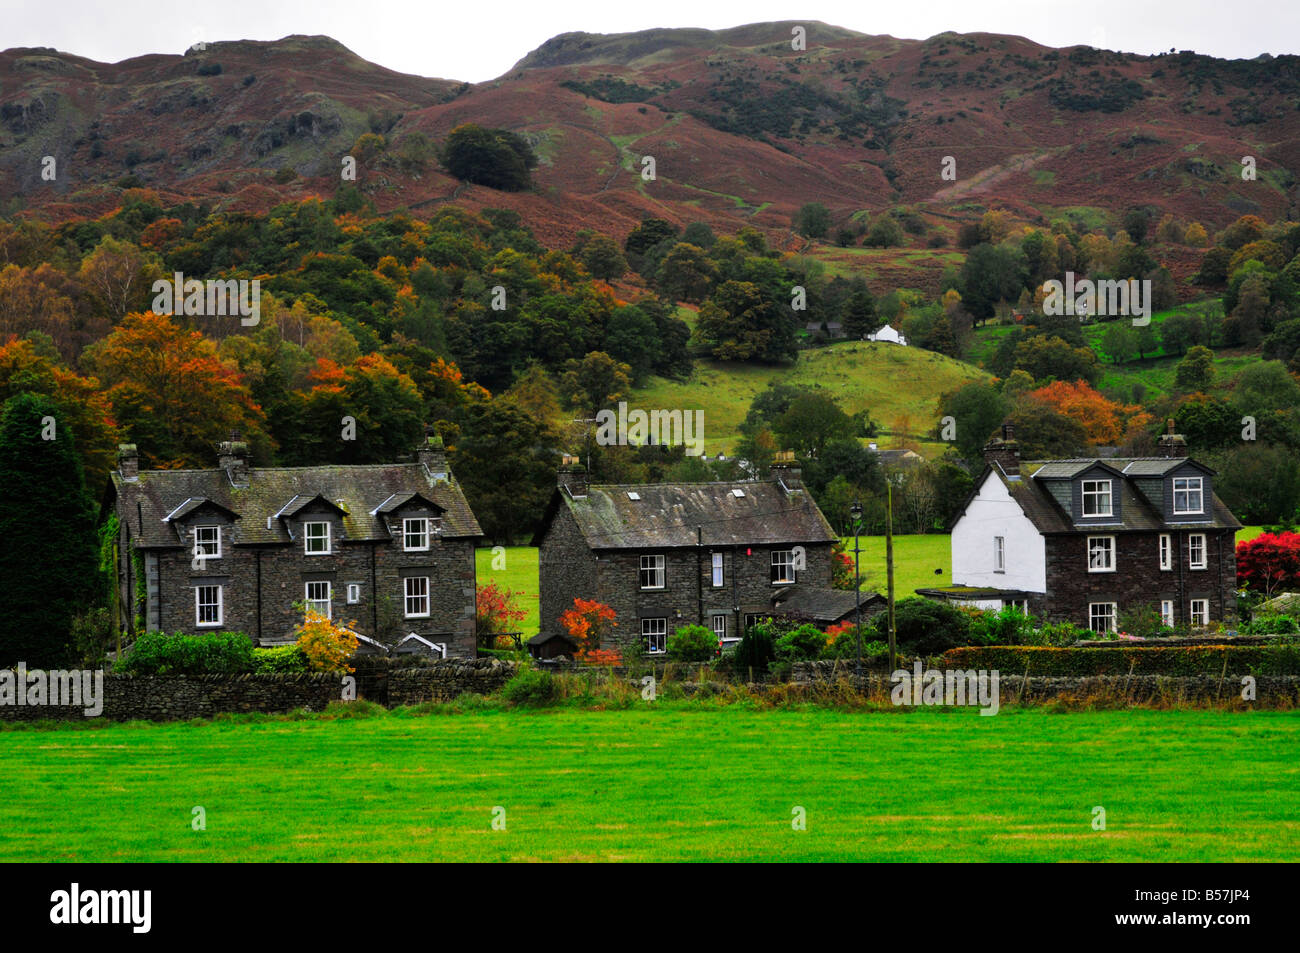 houses in grasmere village seen from A591 - Stock Image